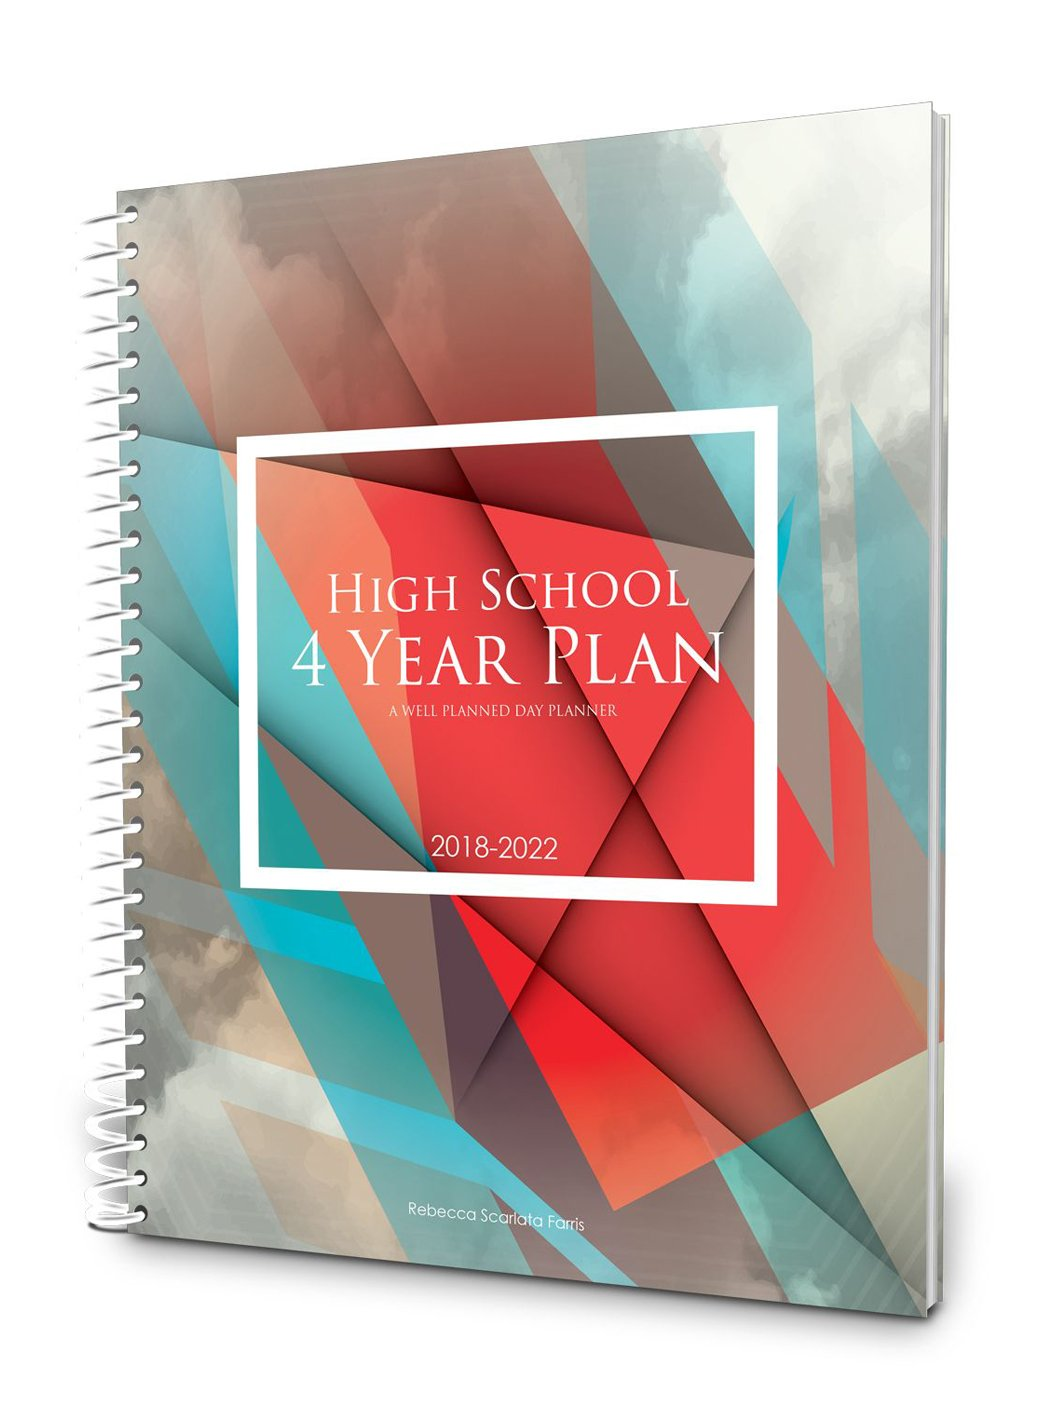 Well Planned Day, High School 4 Year Plan, July 2018 - June 2022 by Home Educating Family Publishing